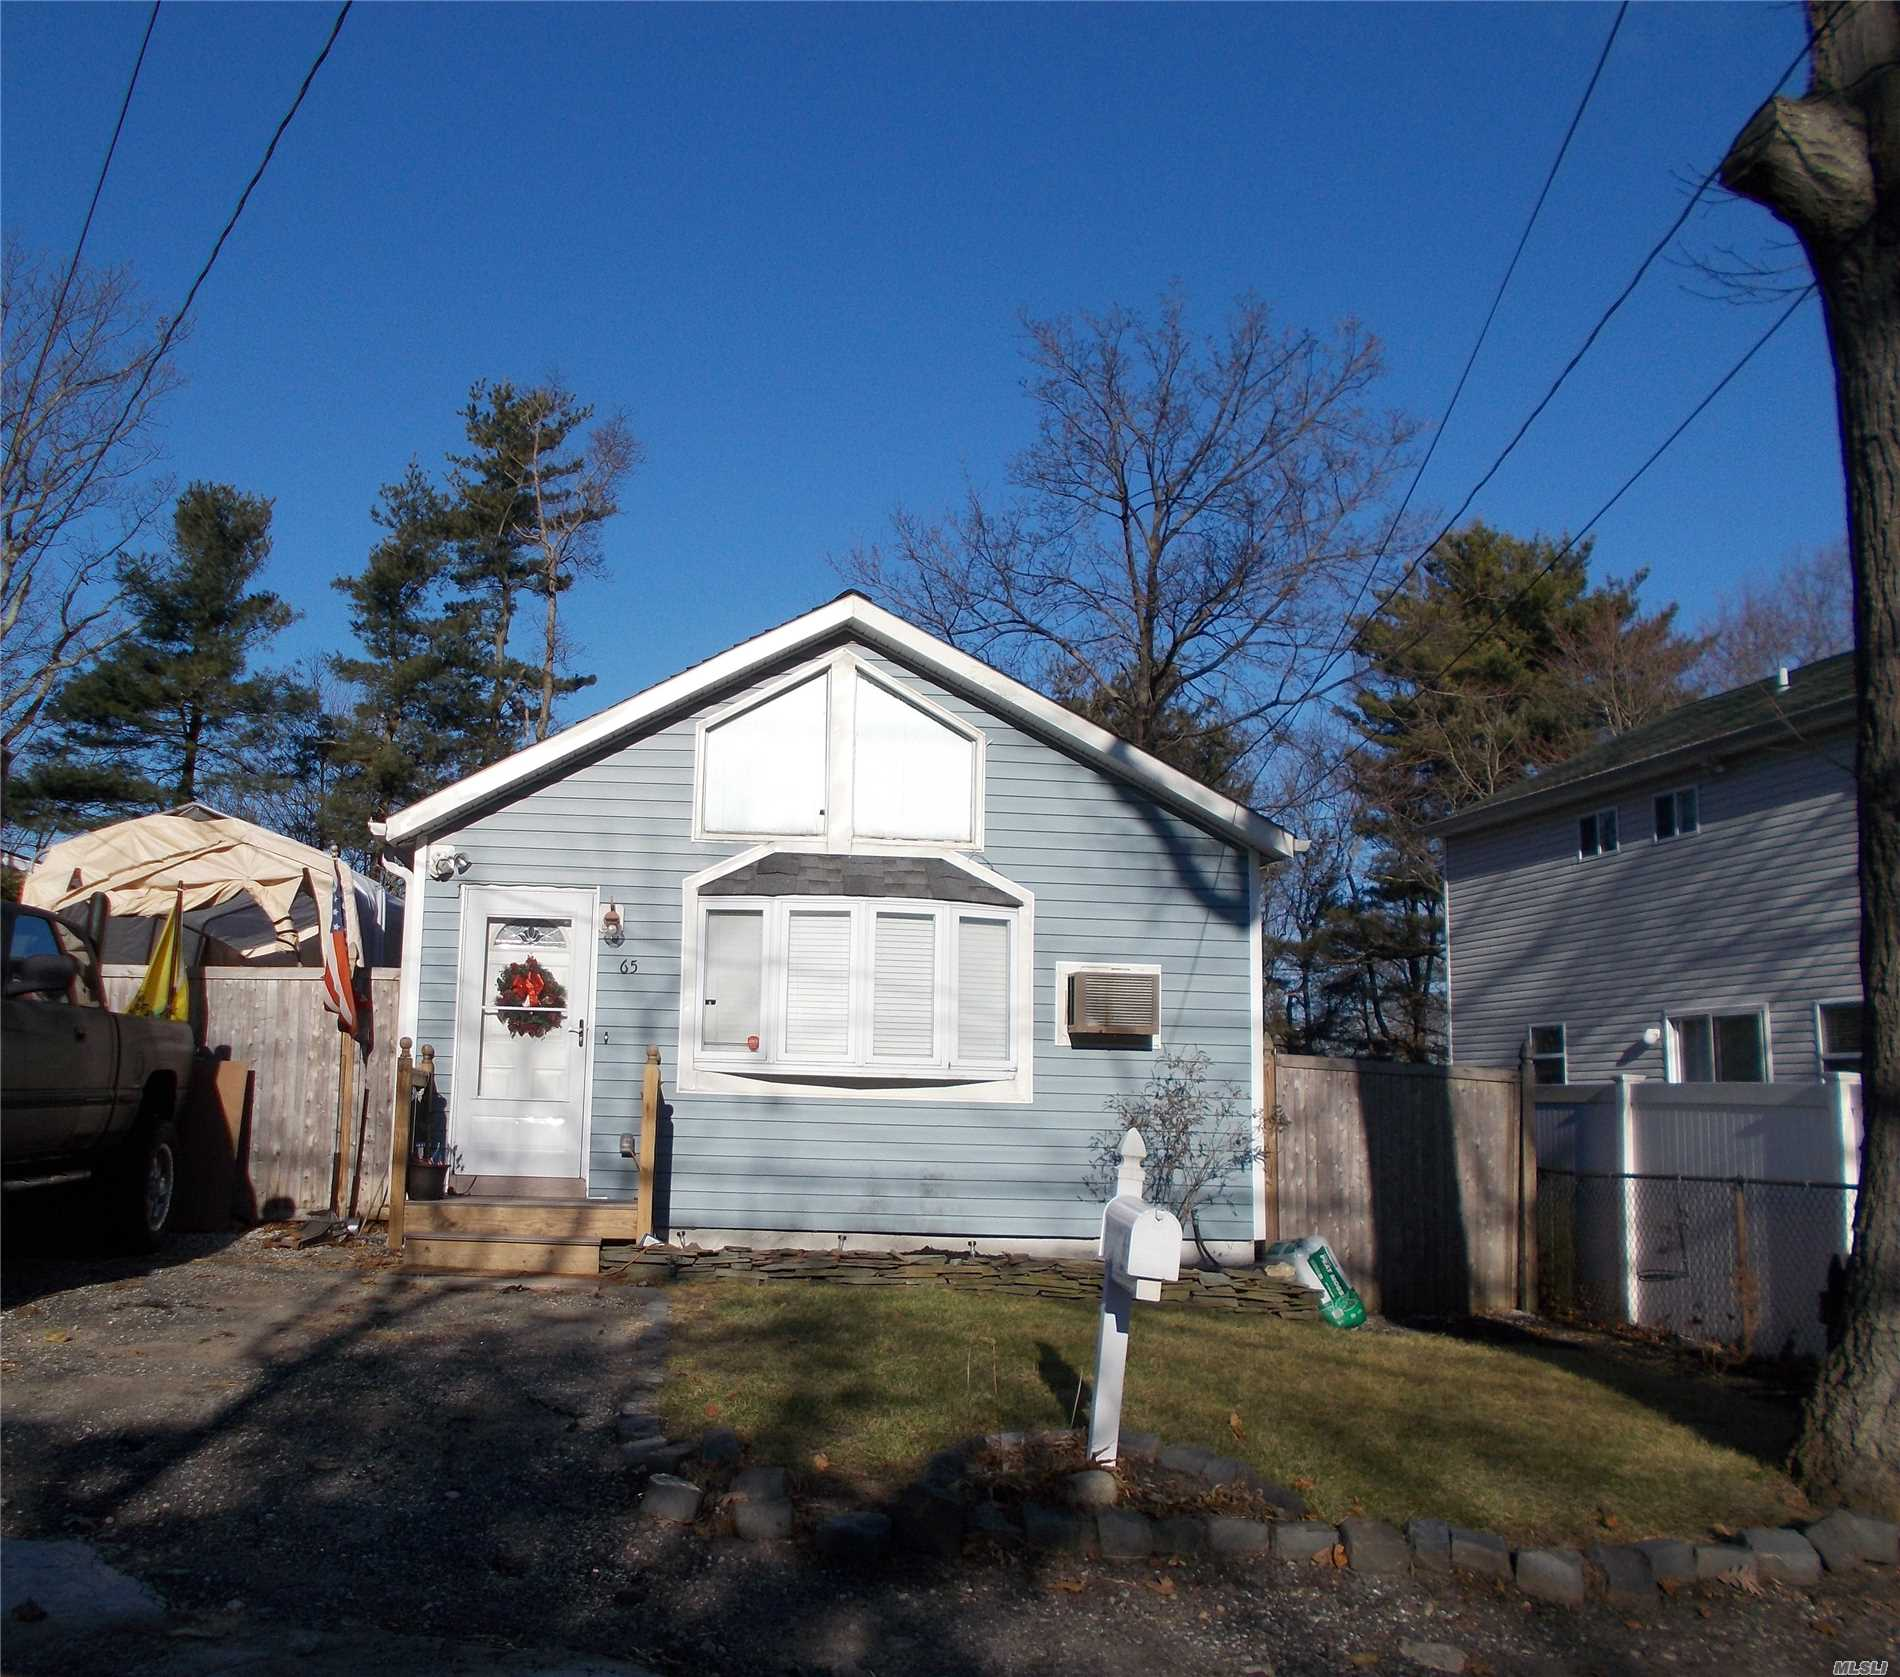 Bright & Airy 2 Bedroom Ranch. Living Room W/Cathedral Ceiling, New Kitchen, Newer Siding, Roof & Windows. Walk To L.I. Sound Beach.